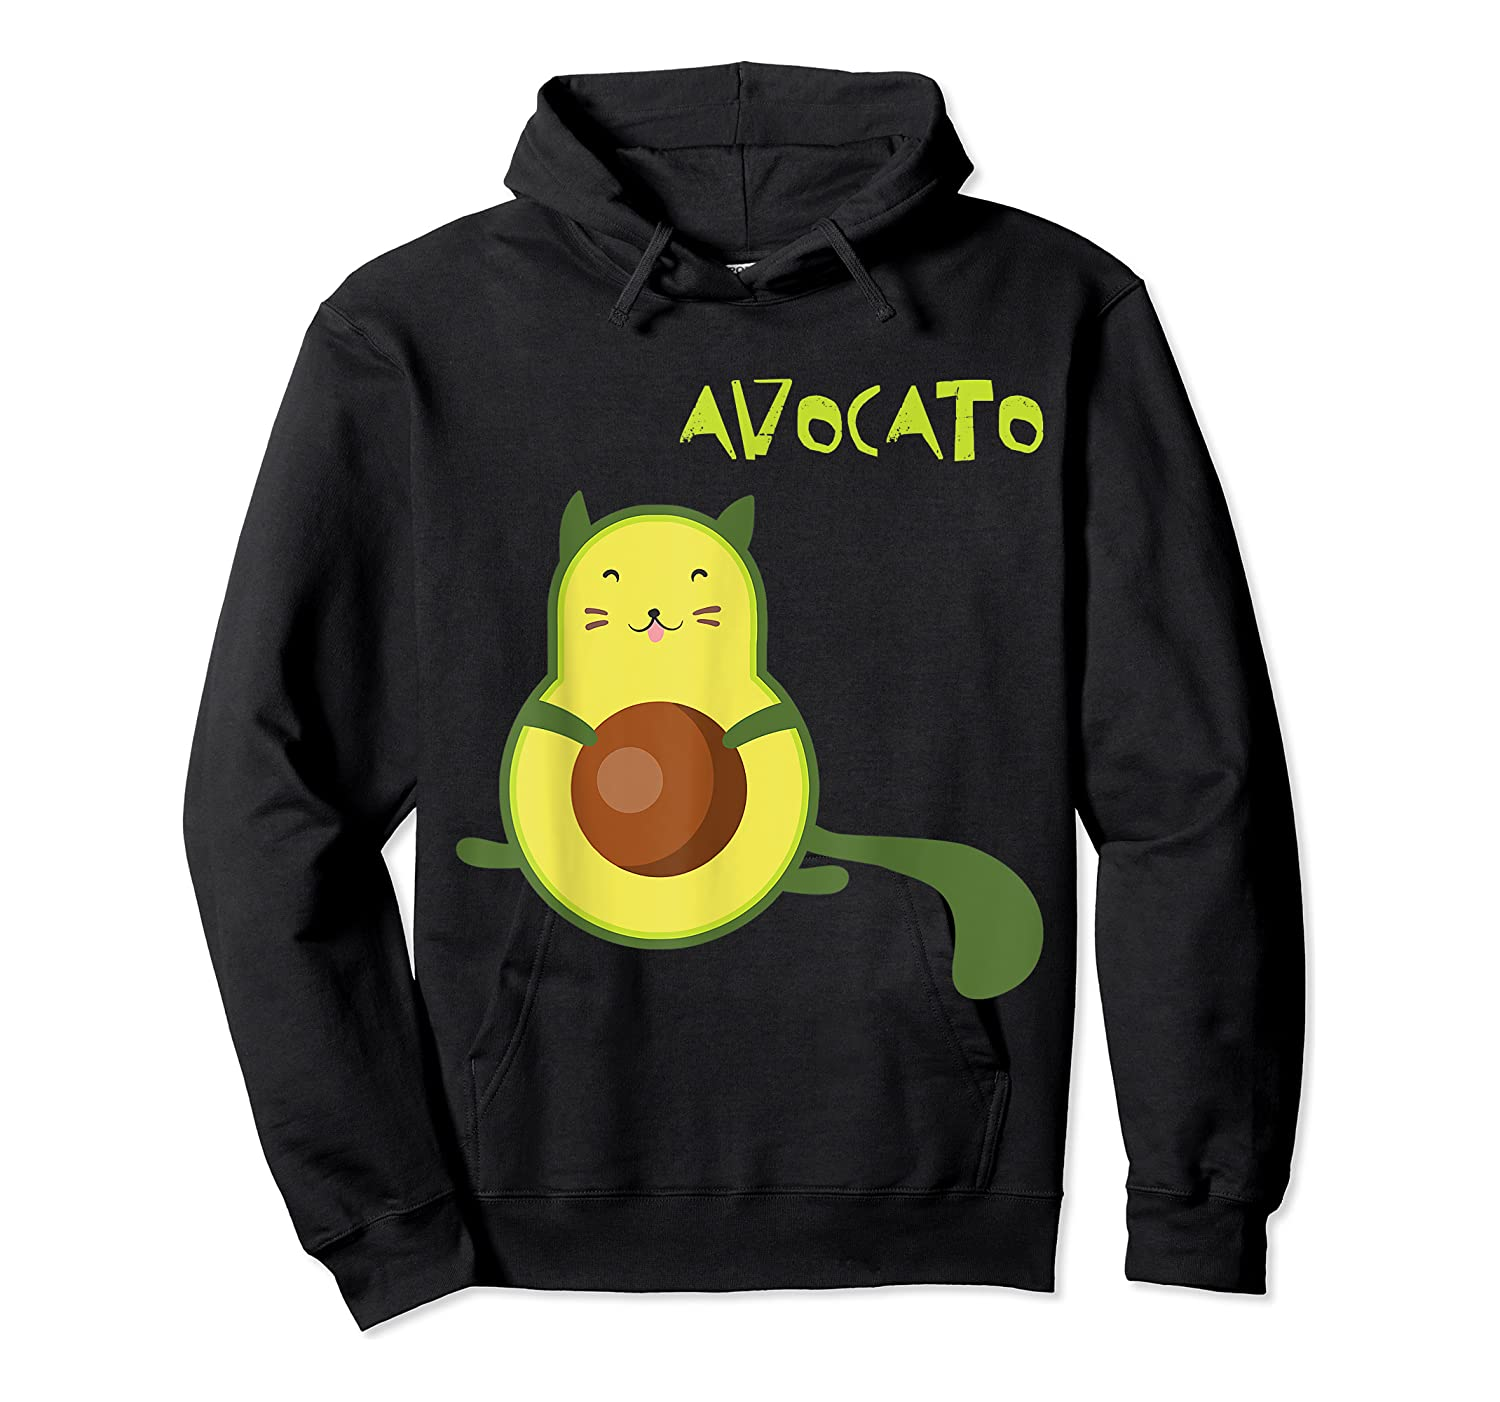 Avocato Funny Cute Cat Gift For Vegan Shirts Unisex Pullover Hoodie